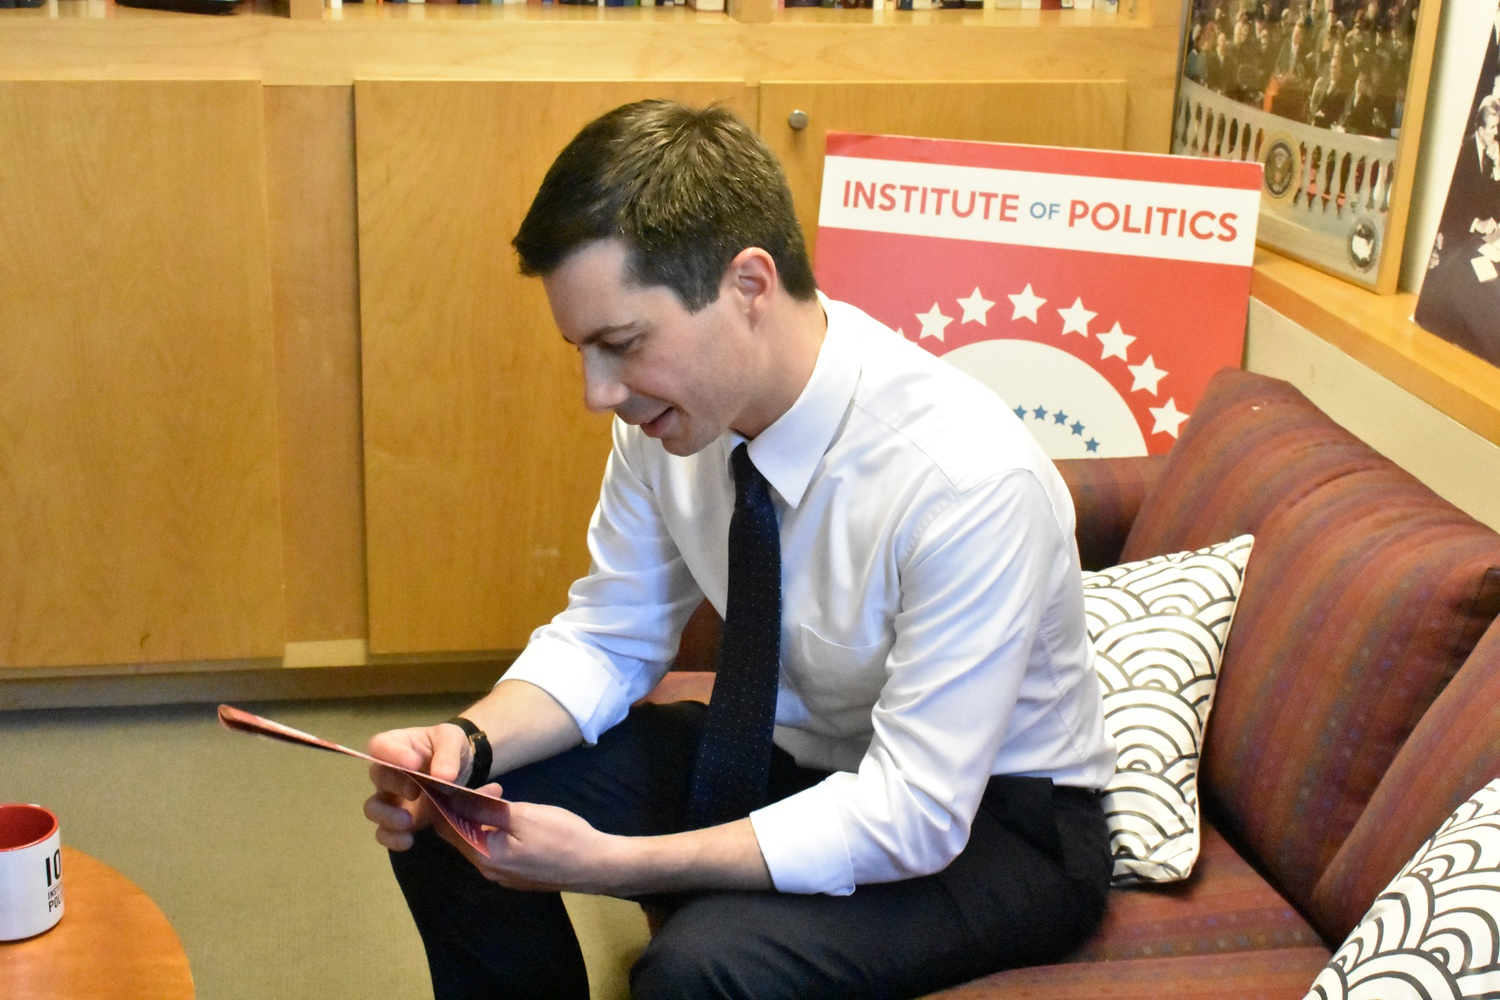 Mayor Pete Looks at a Pamphlet